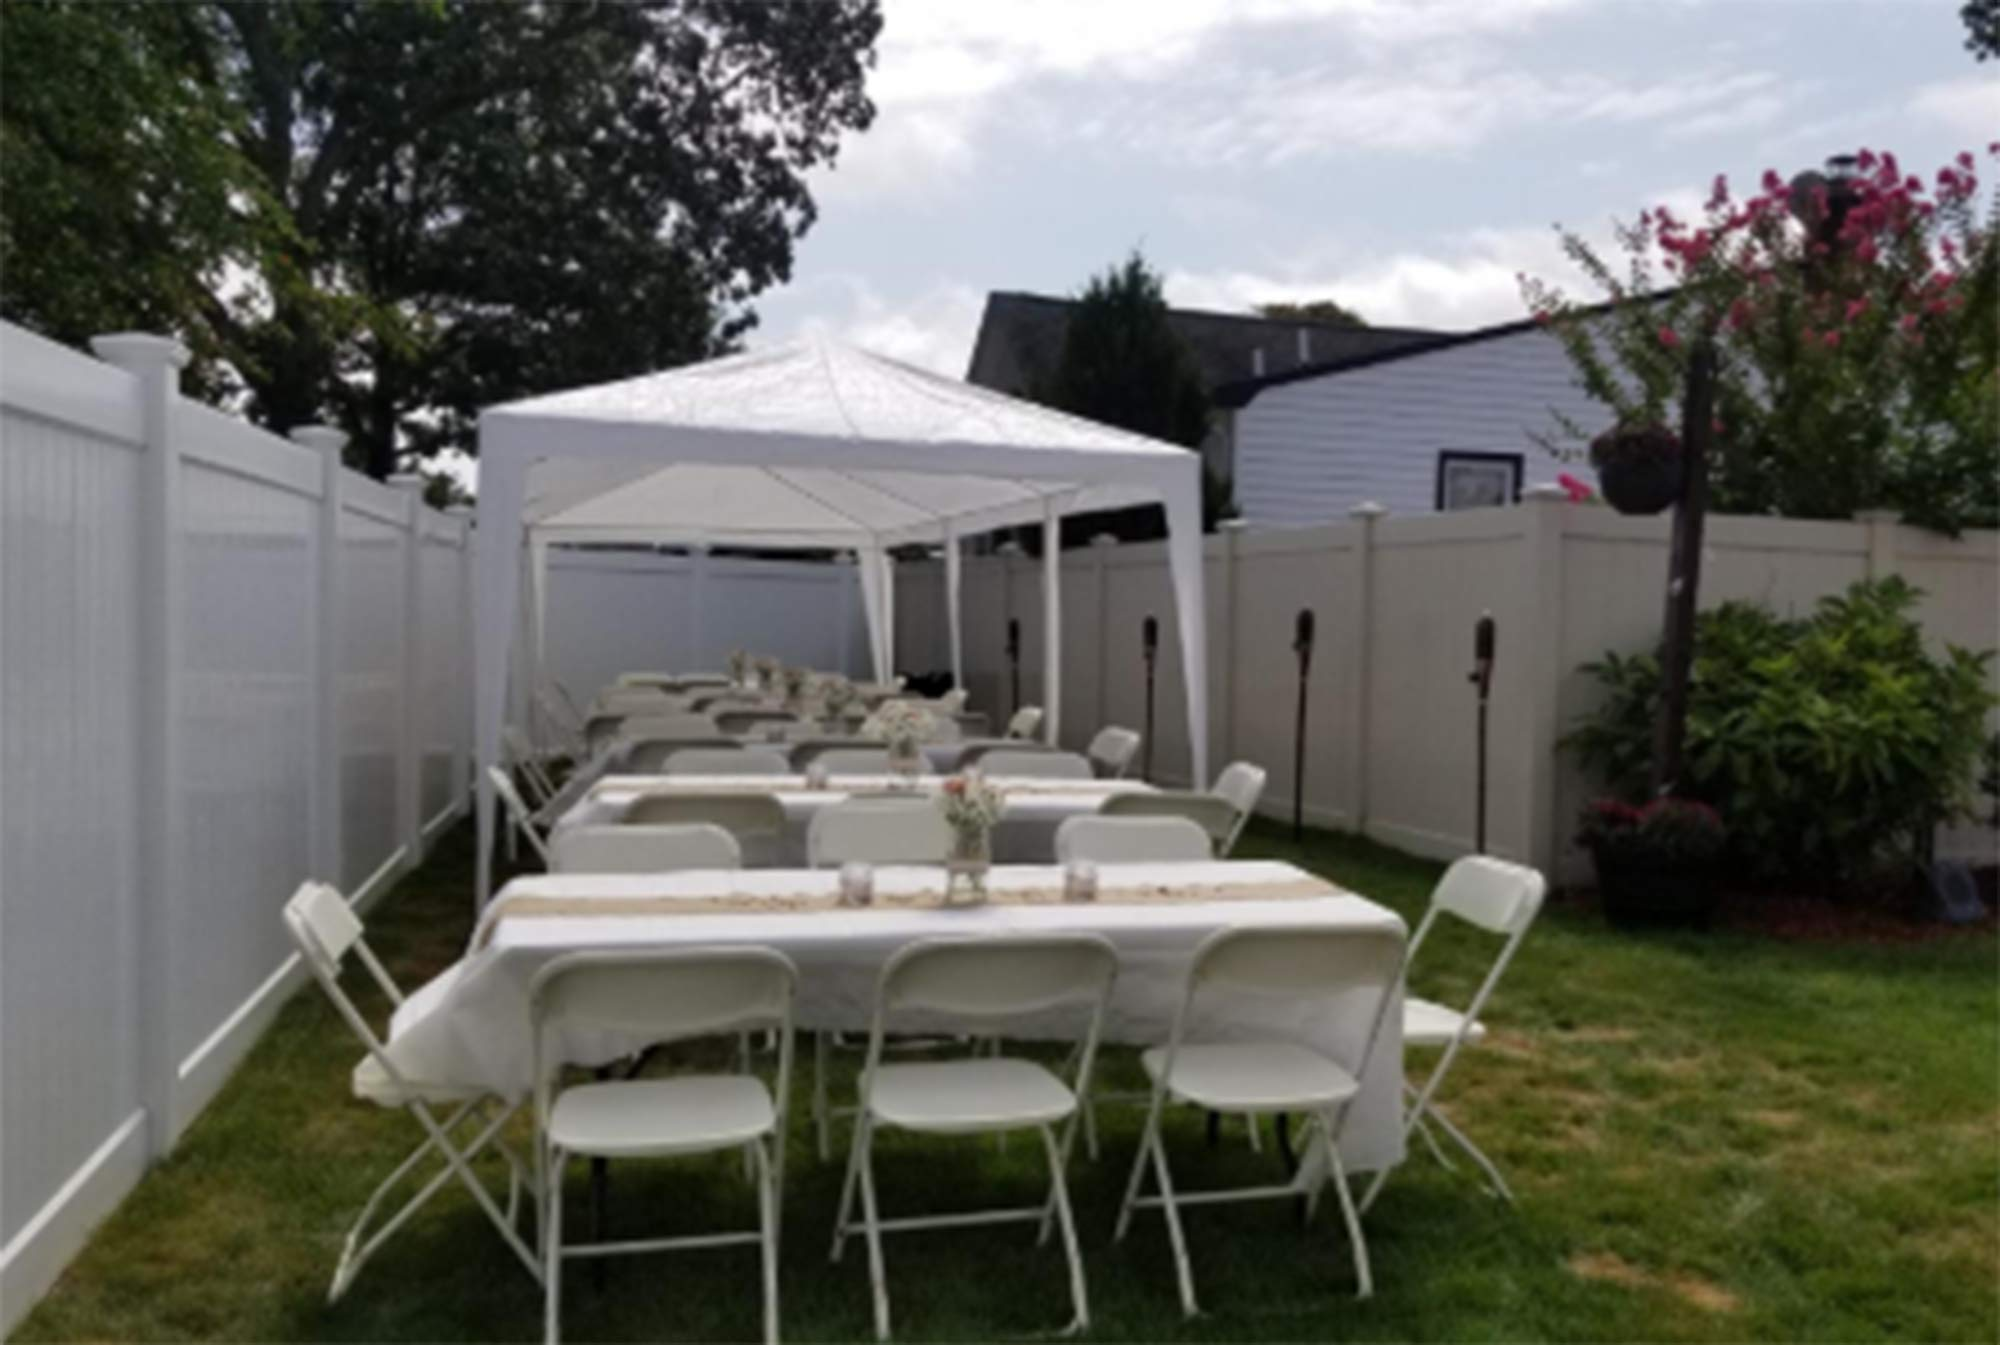 GOJOOASIS 10'x30' Wedding Party Canopy Tent Outdoor Gazebo All Metal Connector